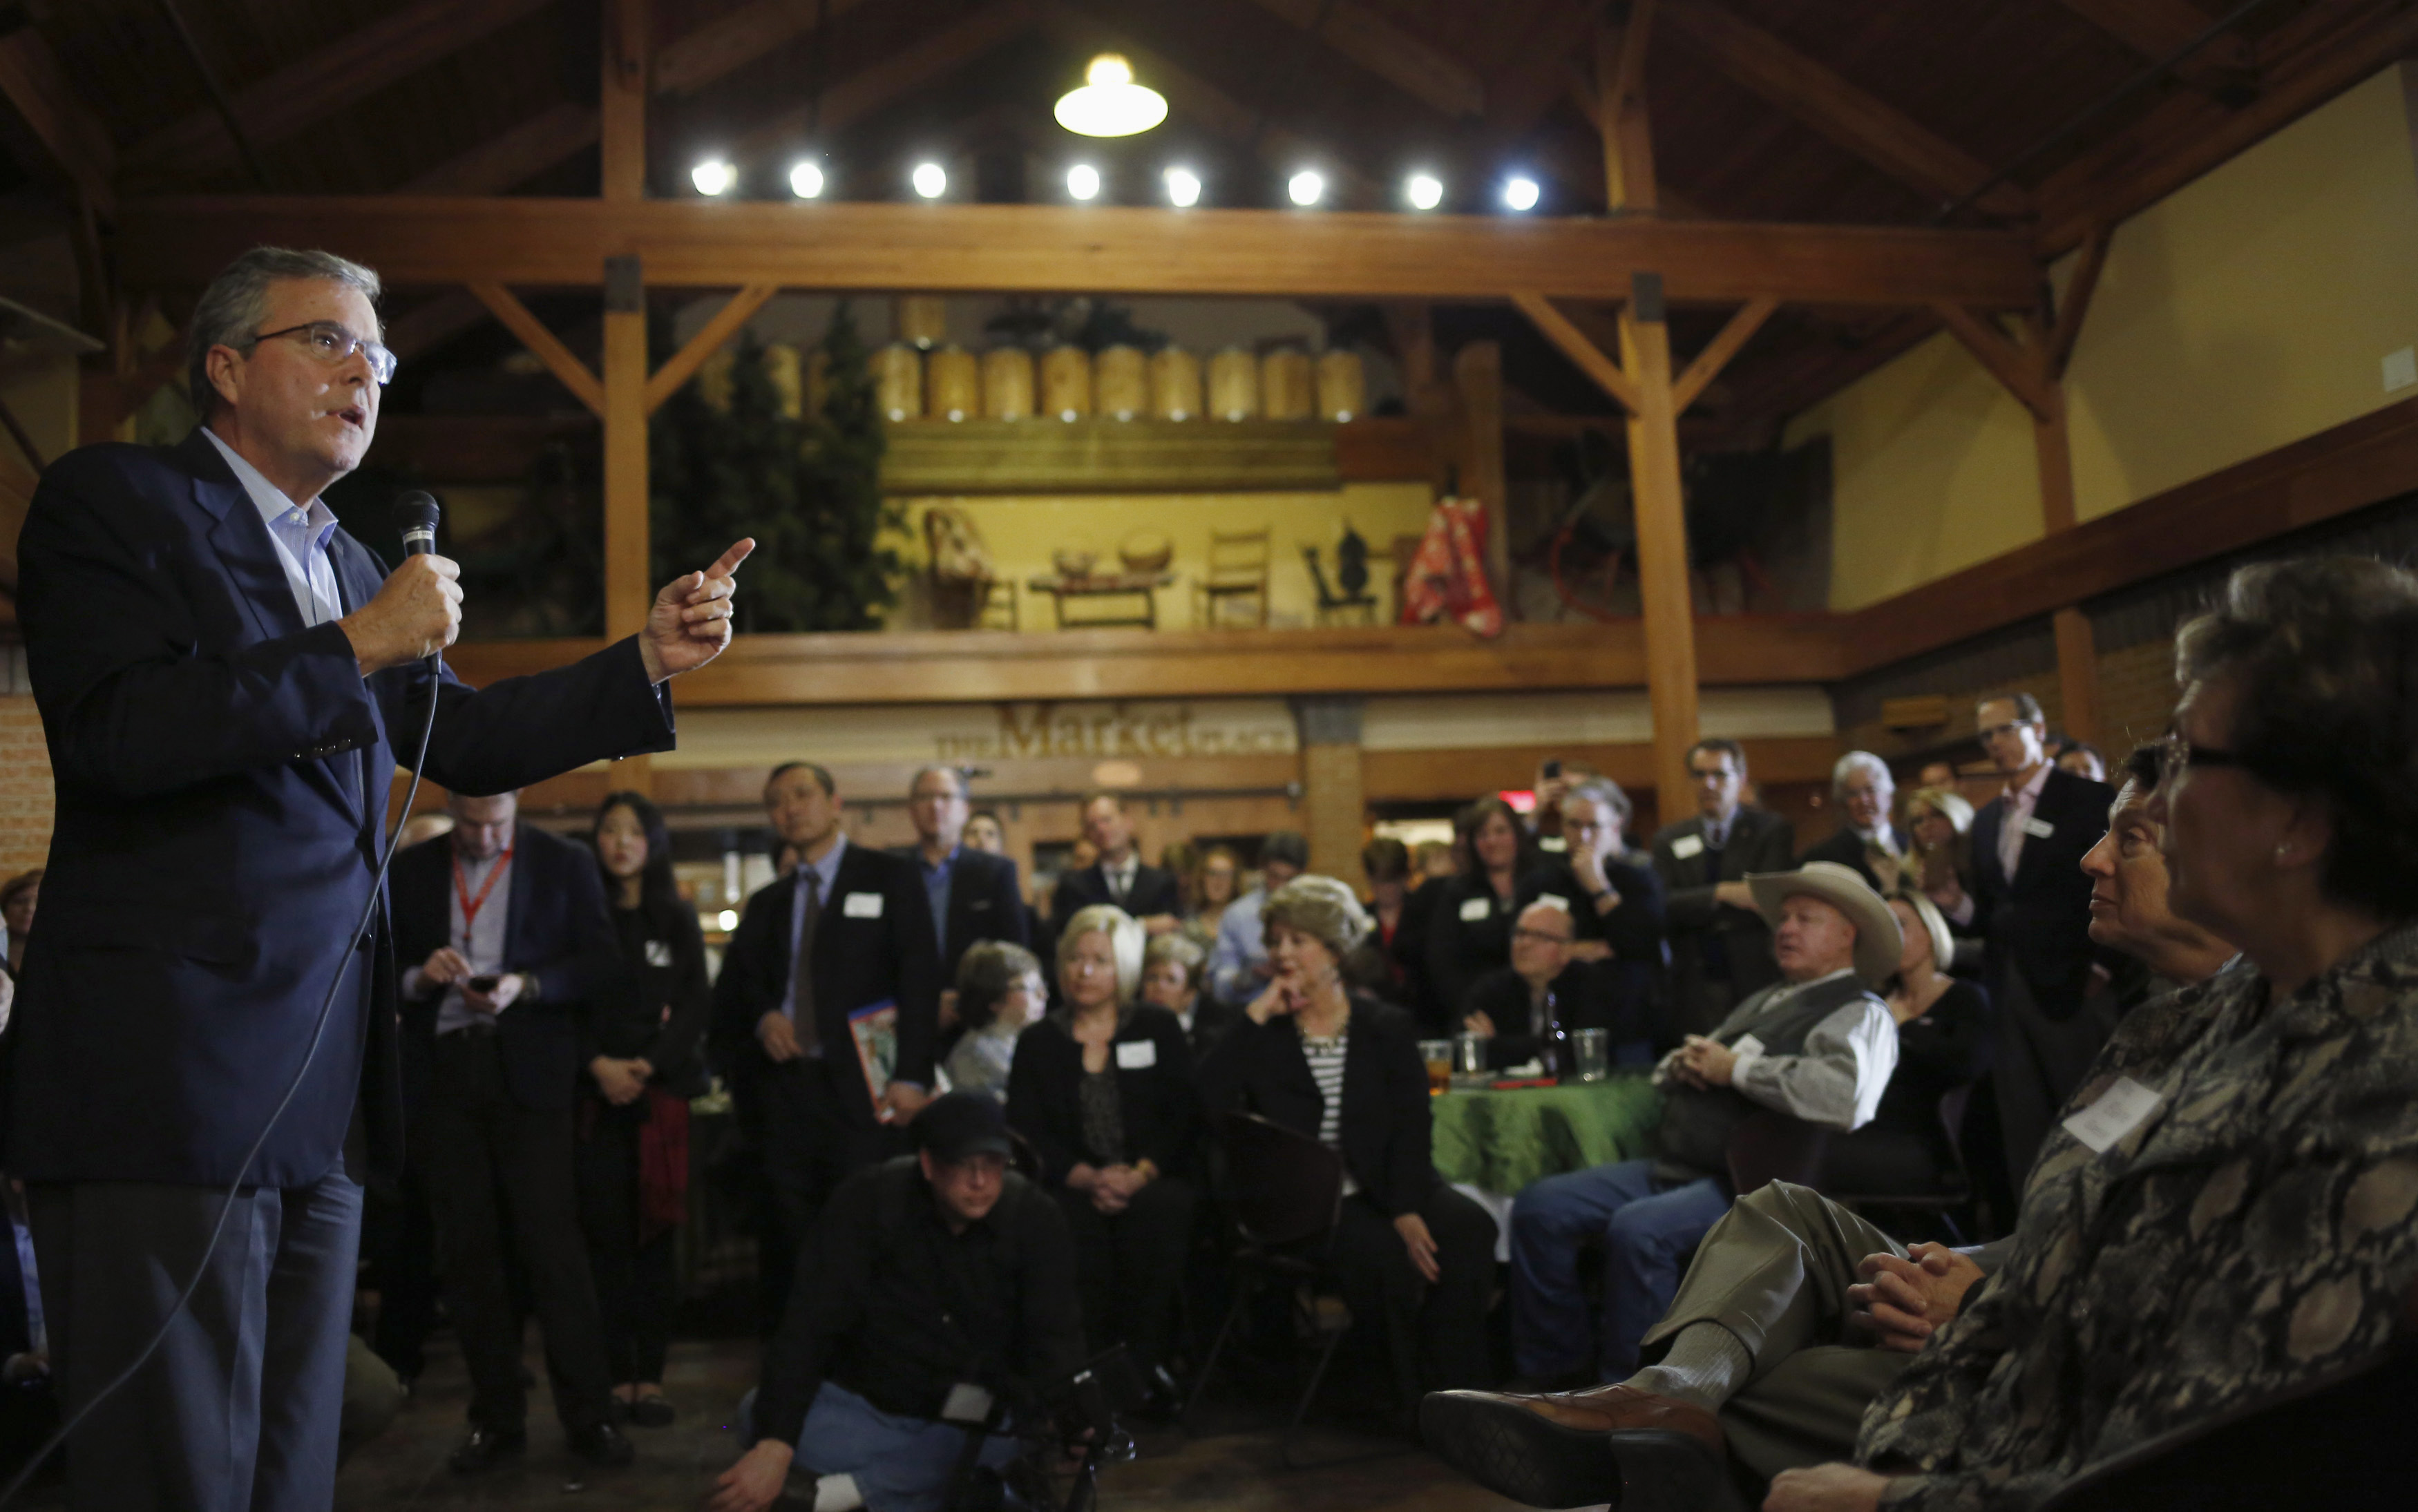 Former Governor of Florida Jeb Bush, a likely 2016 presidential candidate, speaks at a fundraiser for U.S. Rep. David Young (R-IA) in Urbandale, Iowa, March 6, 2015.  Pastors play an important role in mobilizing voters in Iowa, which can afford them face time and influence with candidates. Photo by Jim Young/Reuters